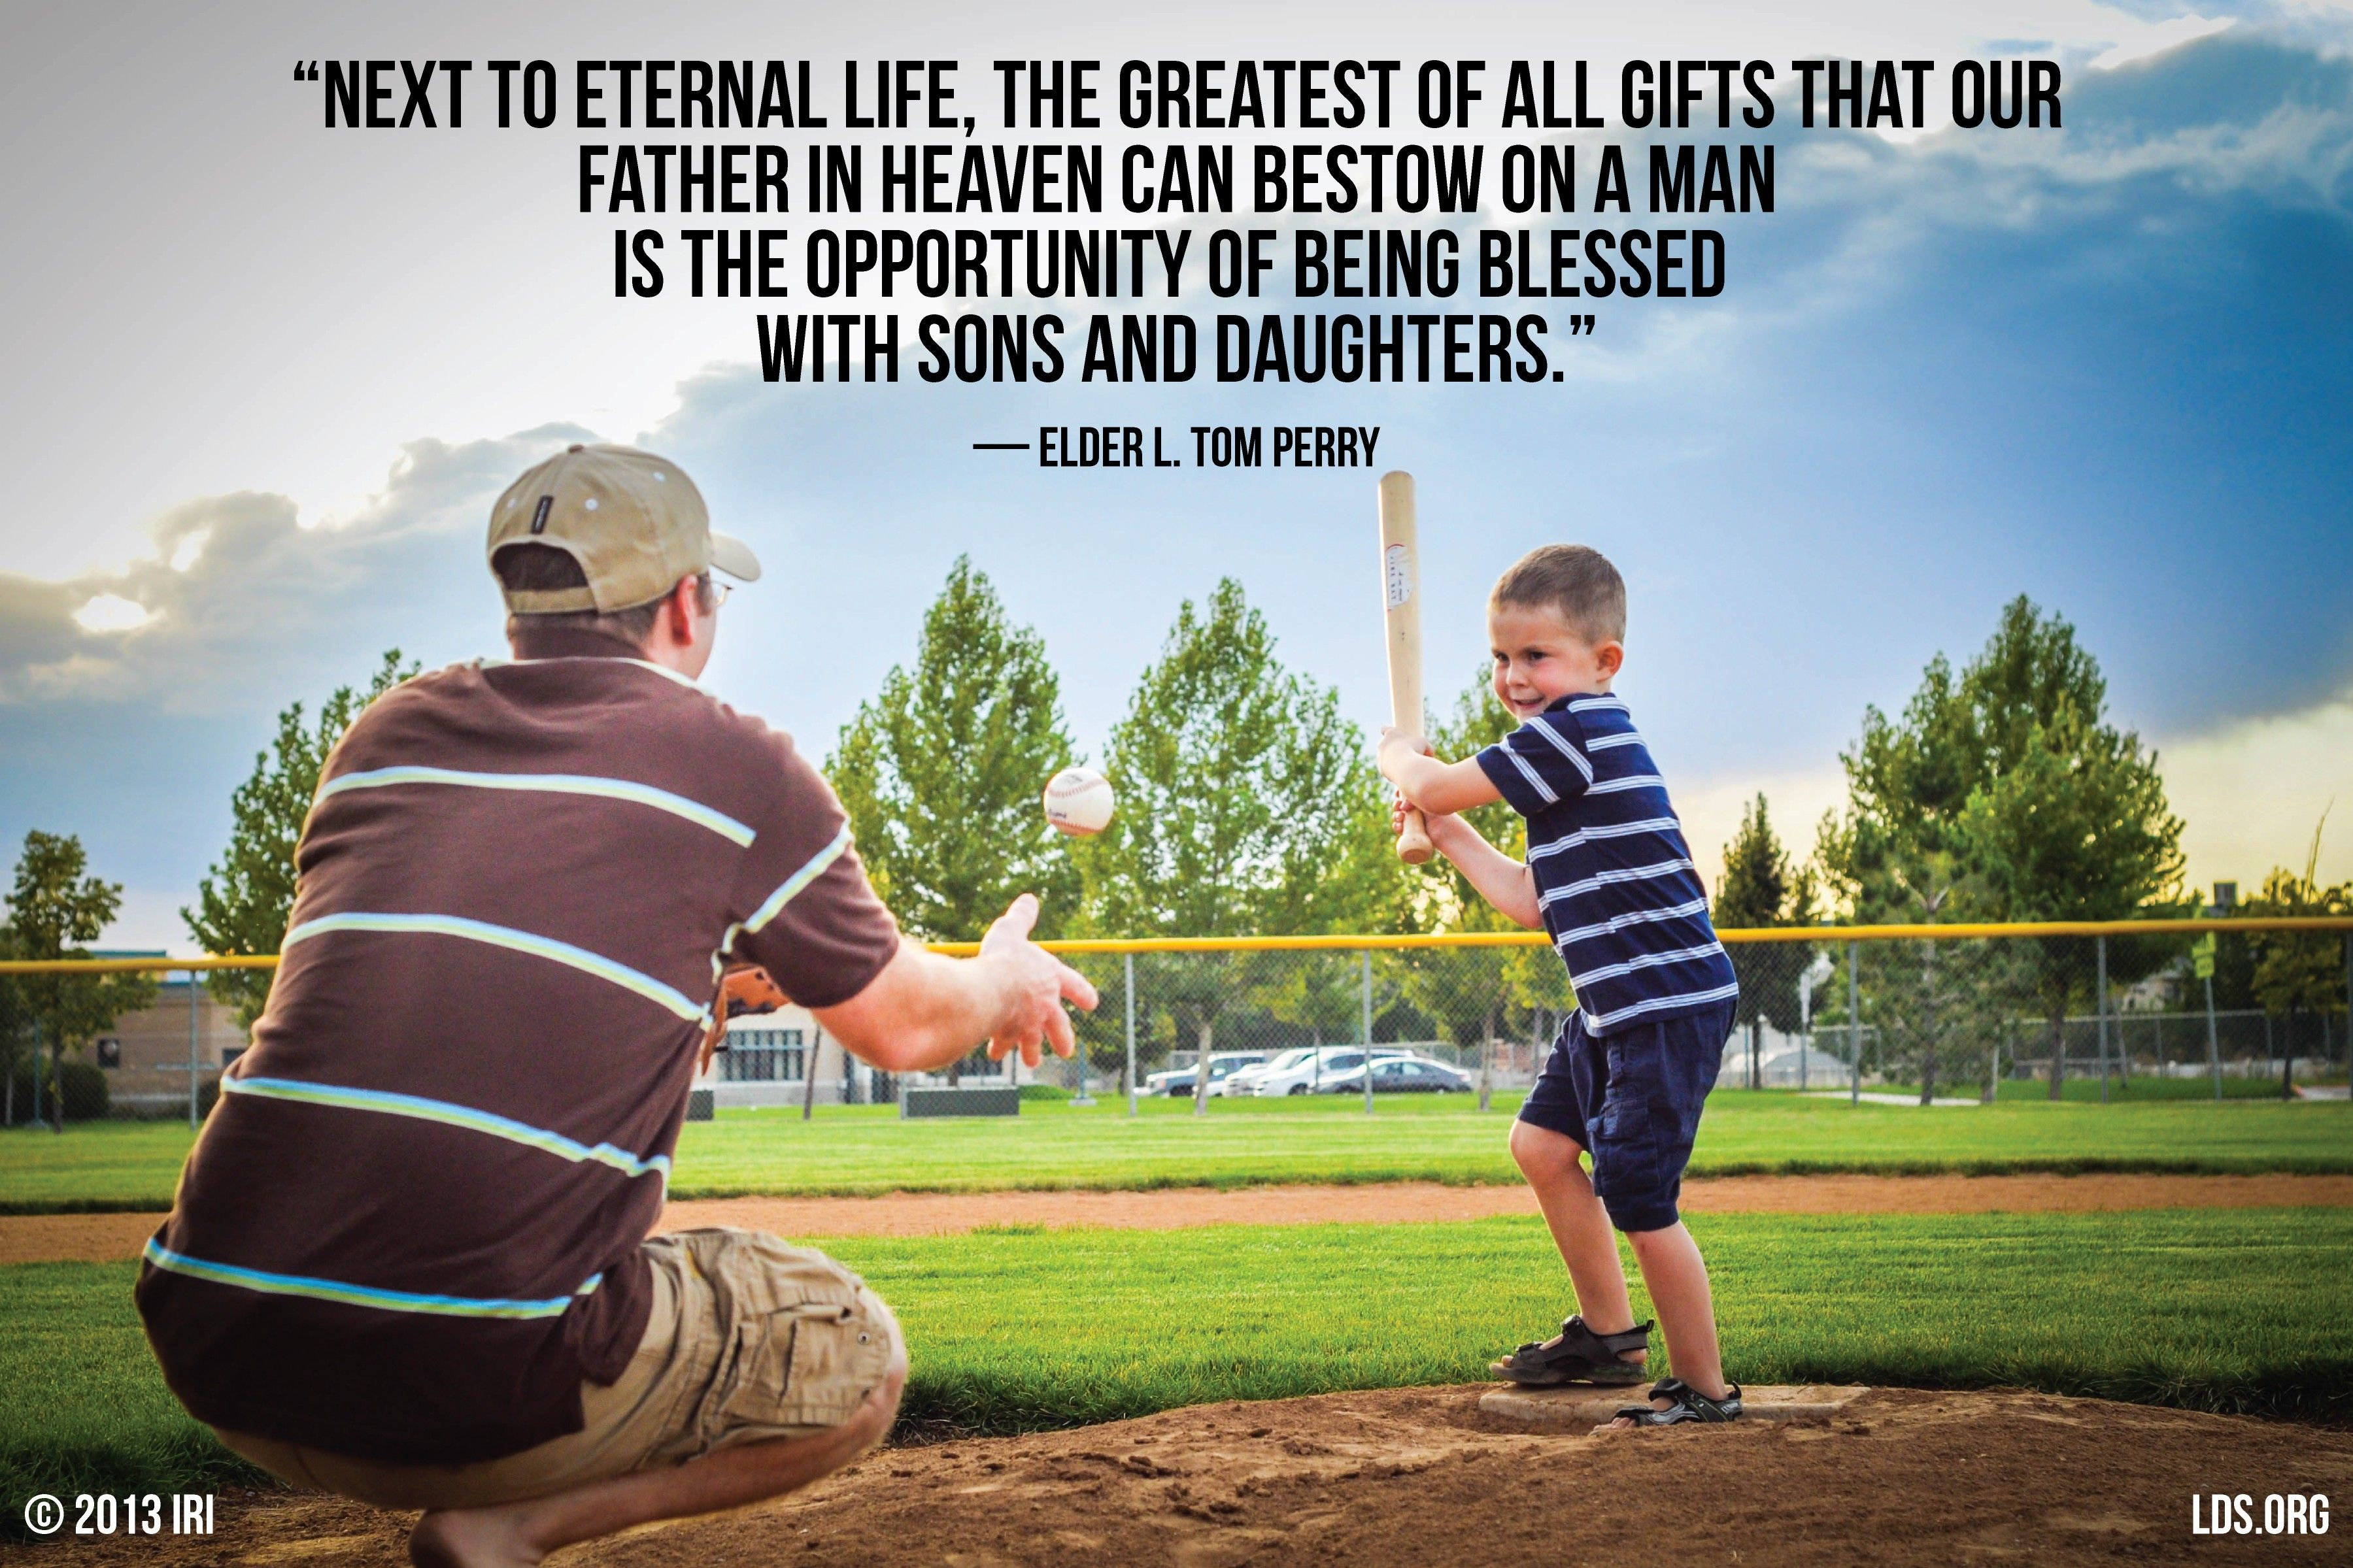 """""""Next to eternal life, the greatest of all gifts that our Father in heaven can bestow on a man is the opportunity of being blessed with sons and daughters.""""—Elder L. Tom Perry, """"Father—Your Role, Your Responsibility"""""""